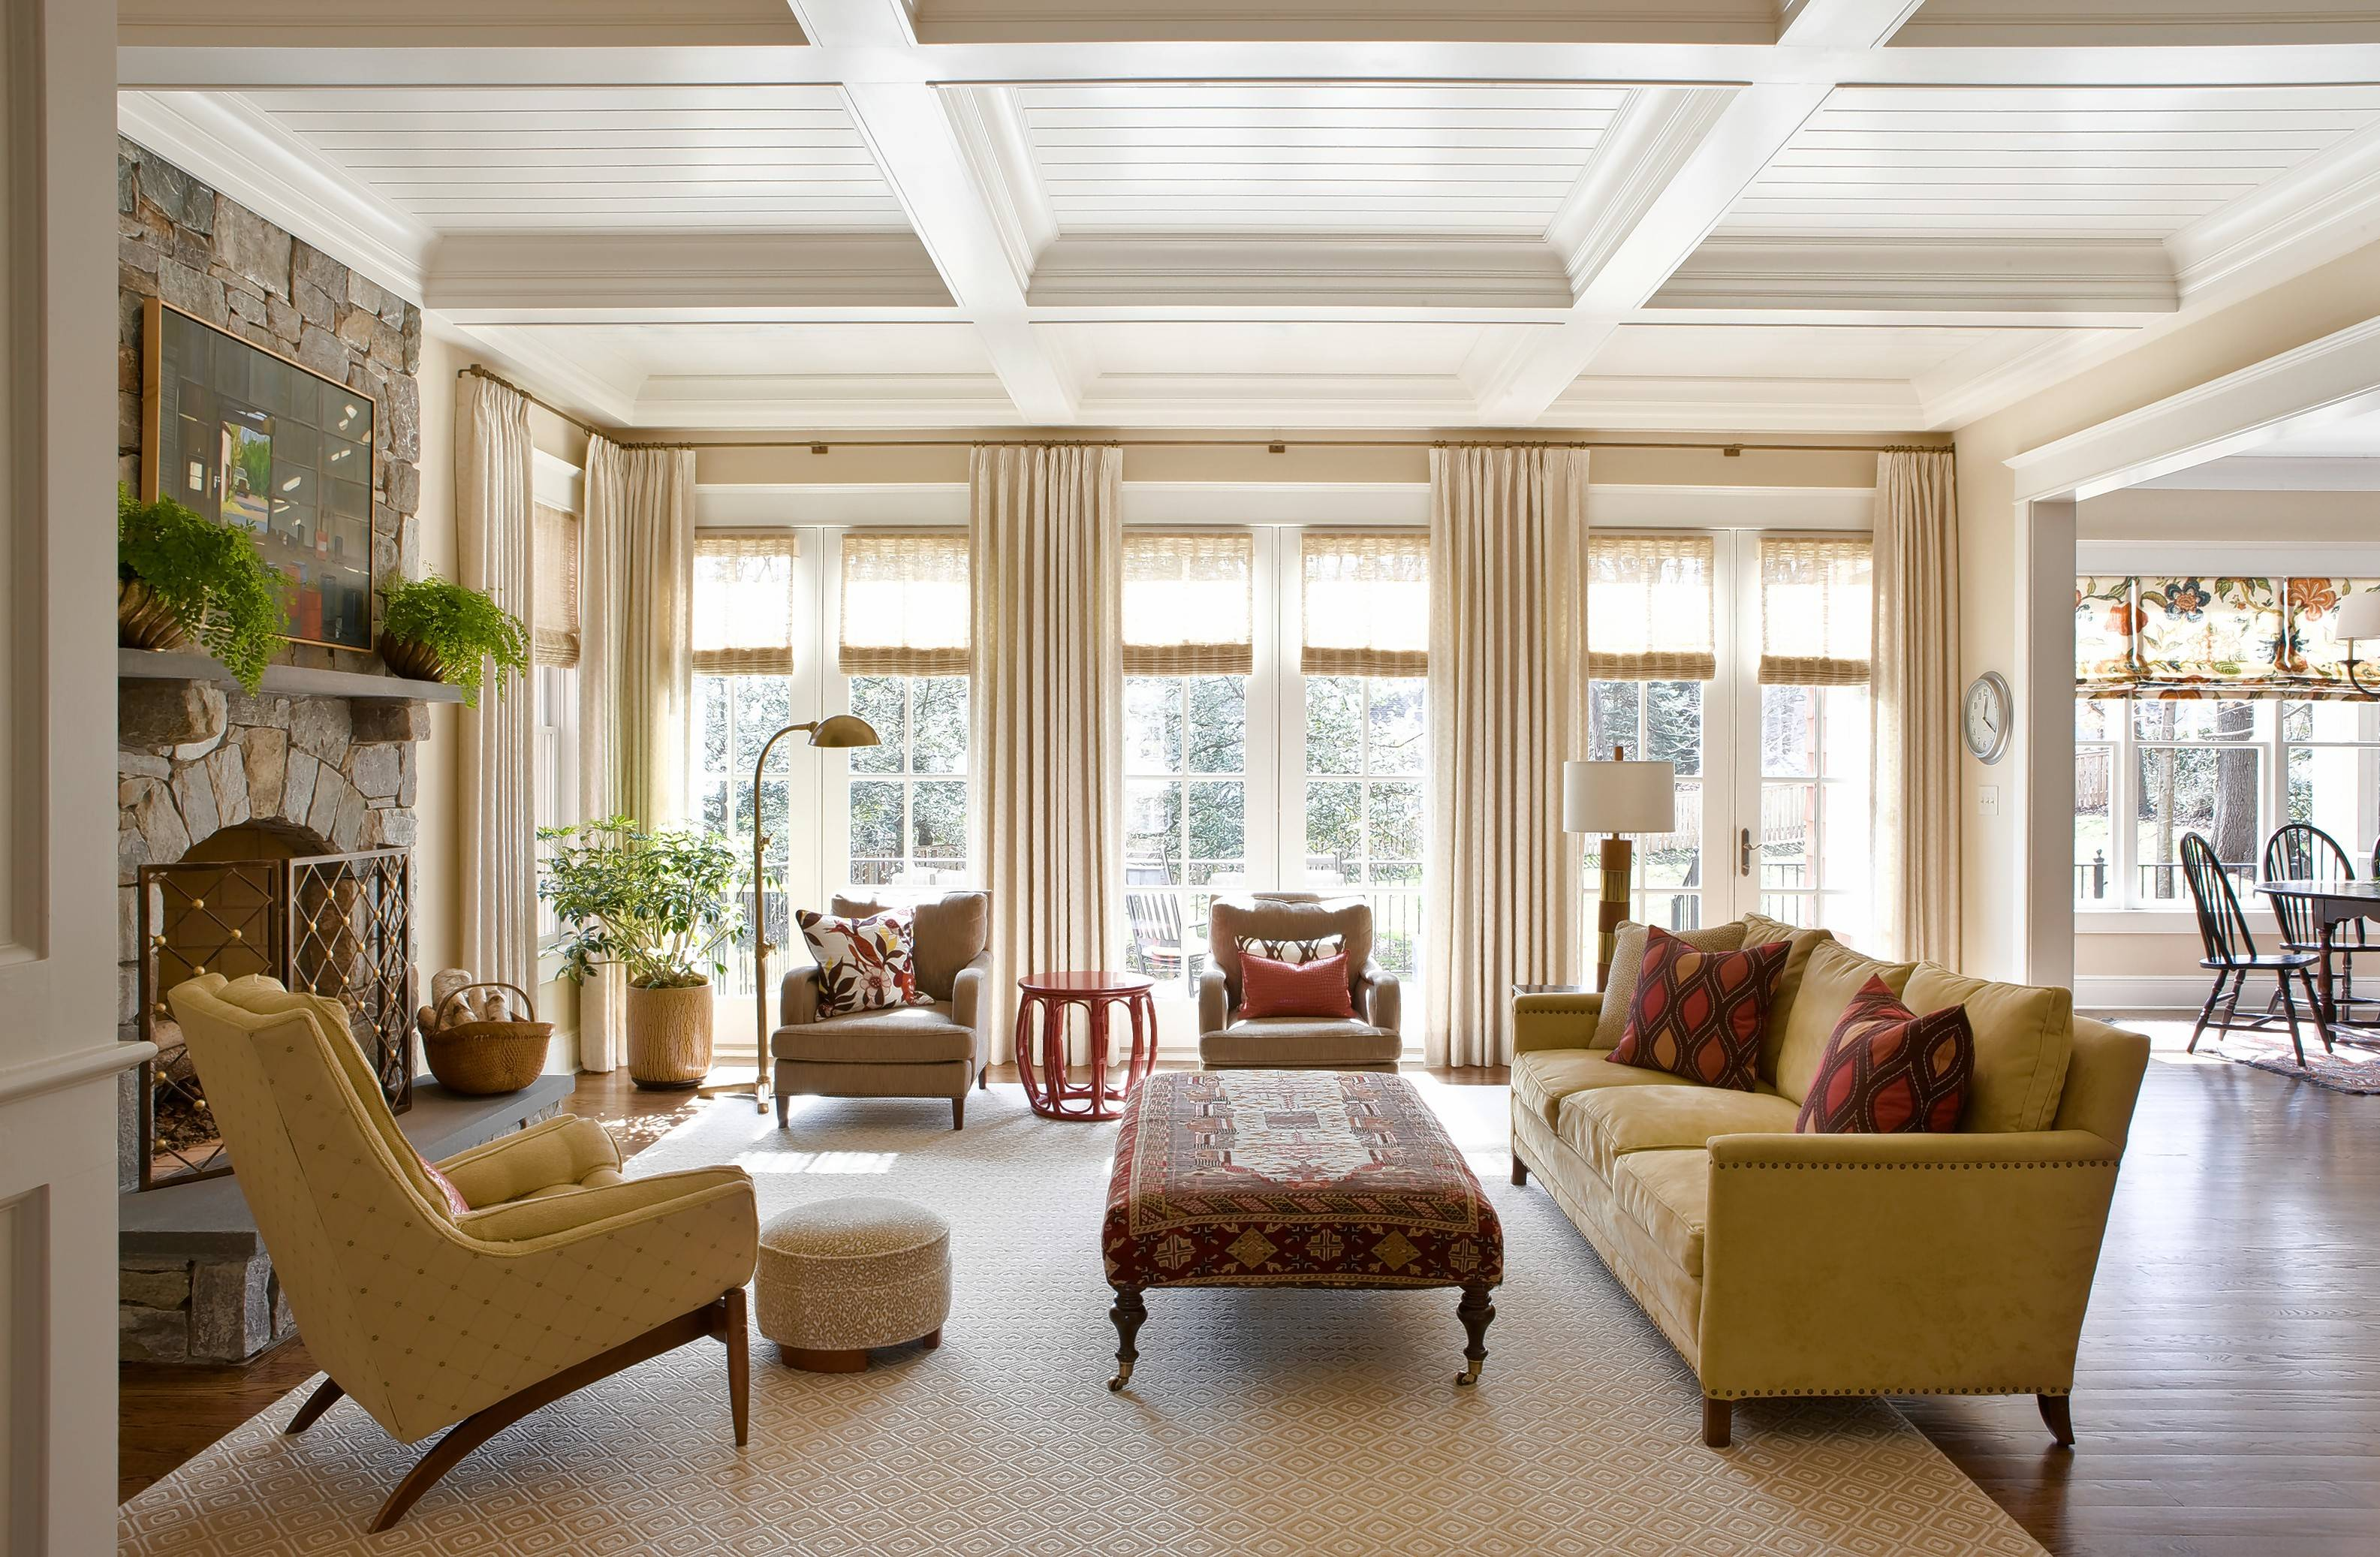 As 2019 approaches, Washington D.C.-based interior designer Marika Meyer sees a trend toward warm neutral colors and antique furniture in warm wood tones, as seen in this Virginia living room designed by Meyer.